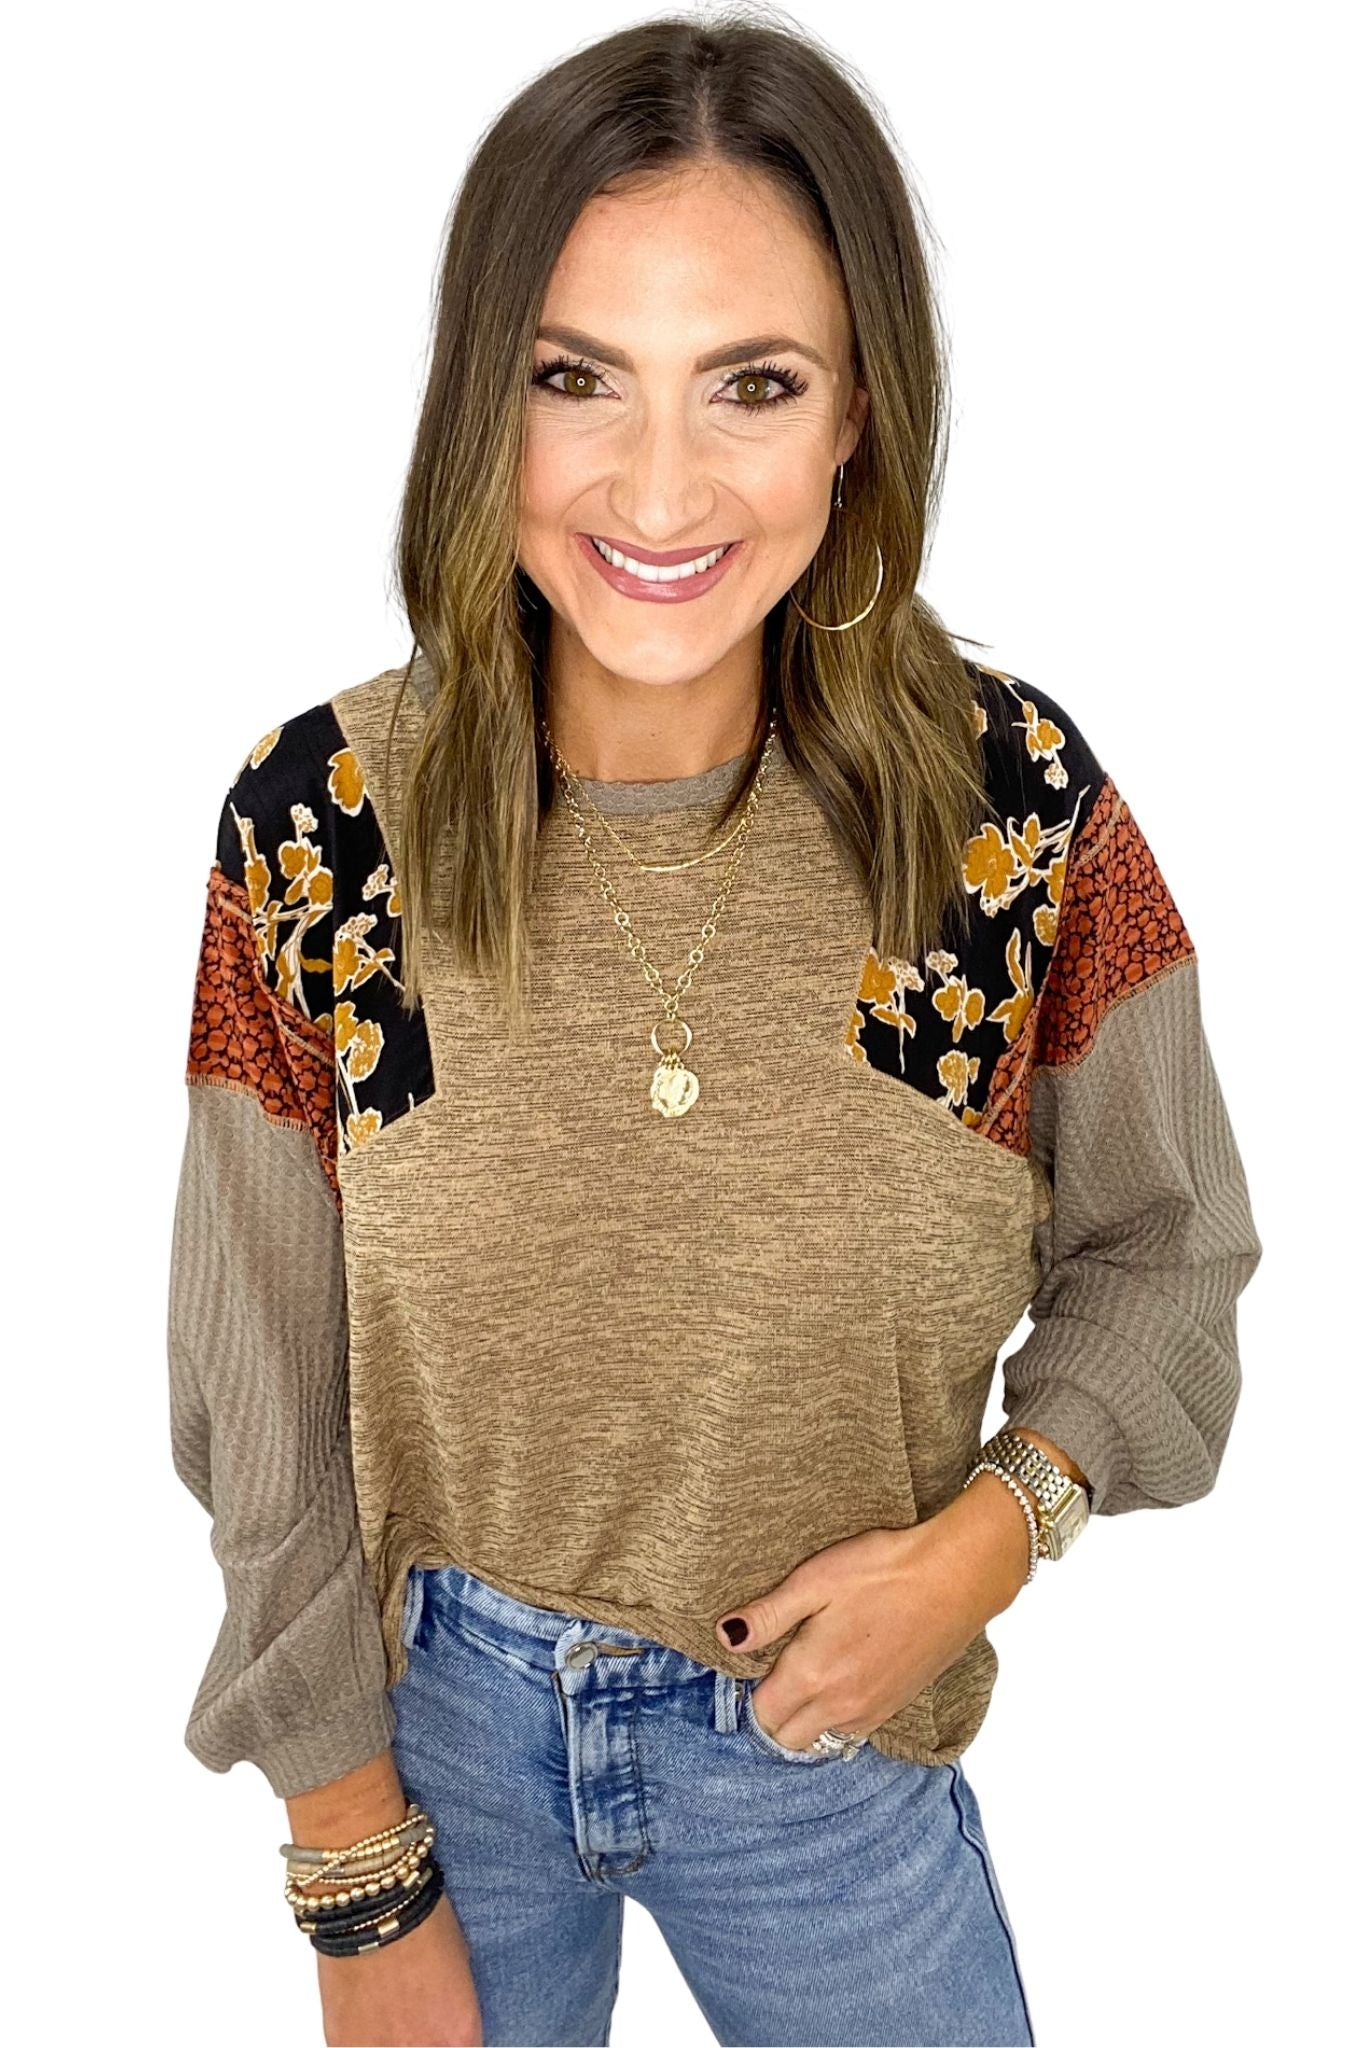 Heathered Taupe Top w/ Mixed Pattern Sleeves